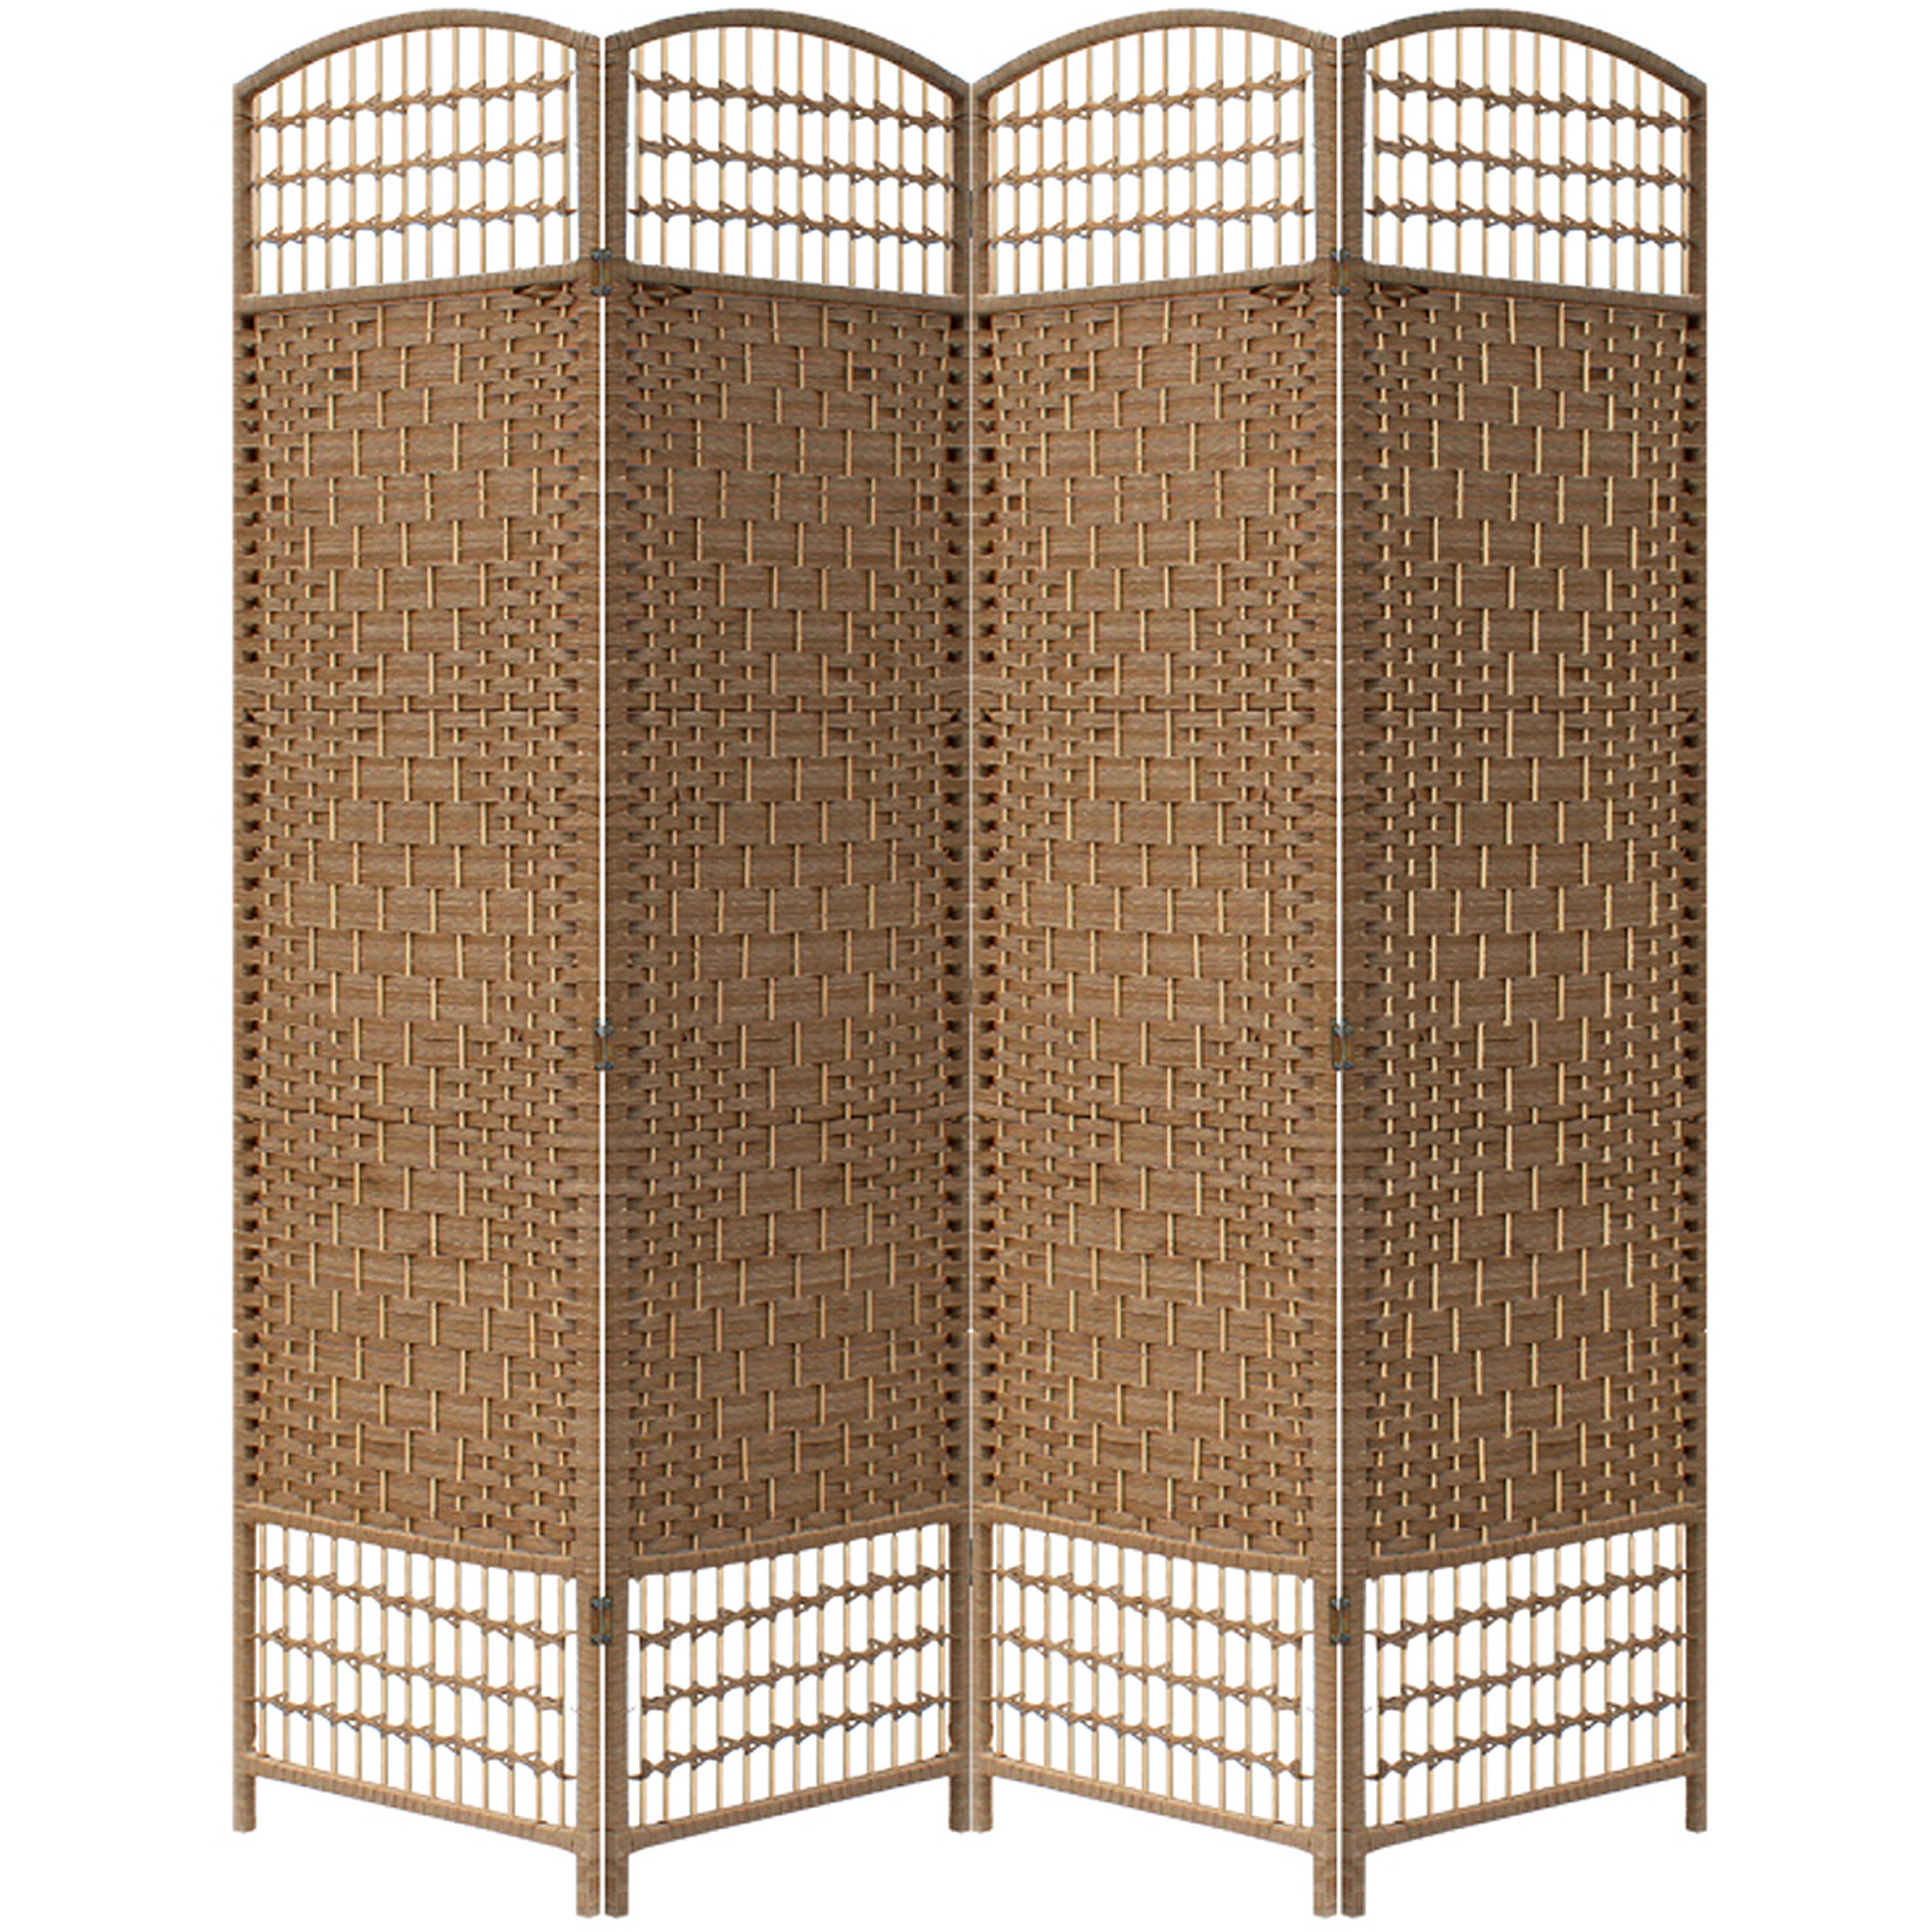 Ore International 4-Panel Brown Paper Straw Weave Screen